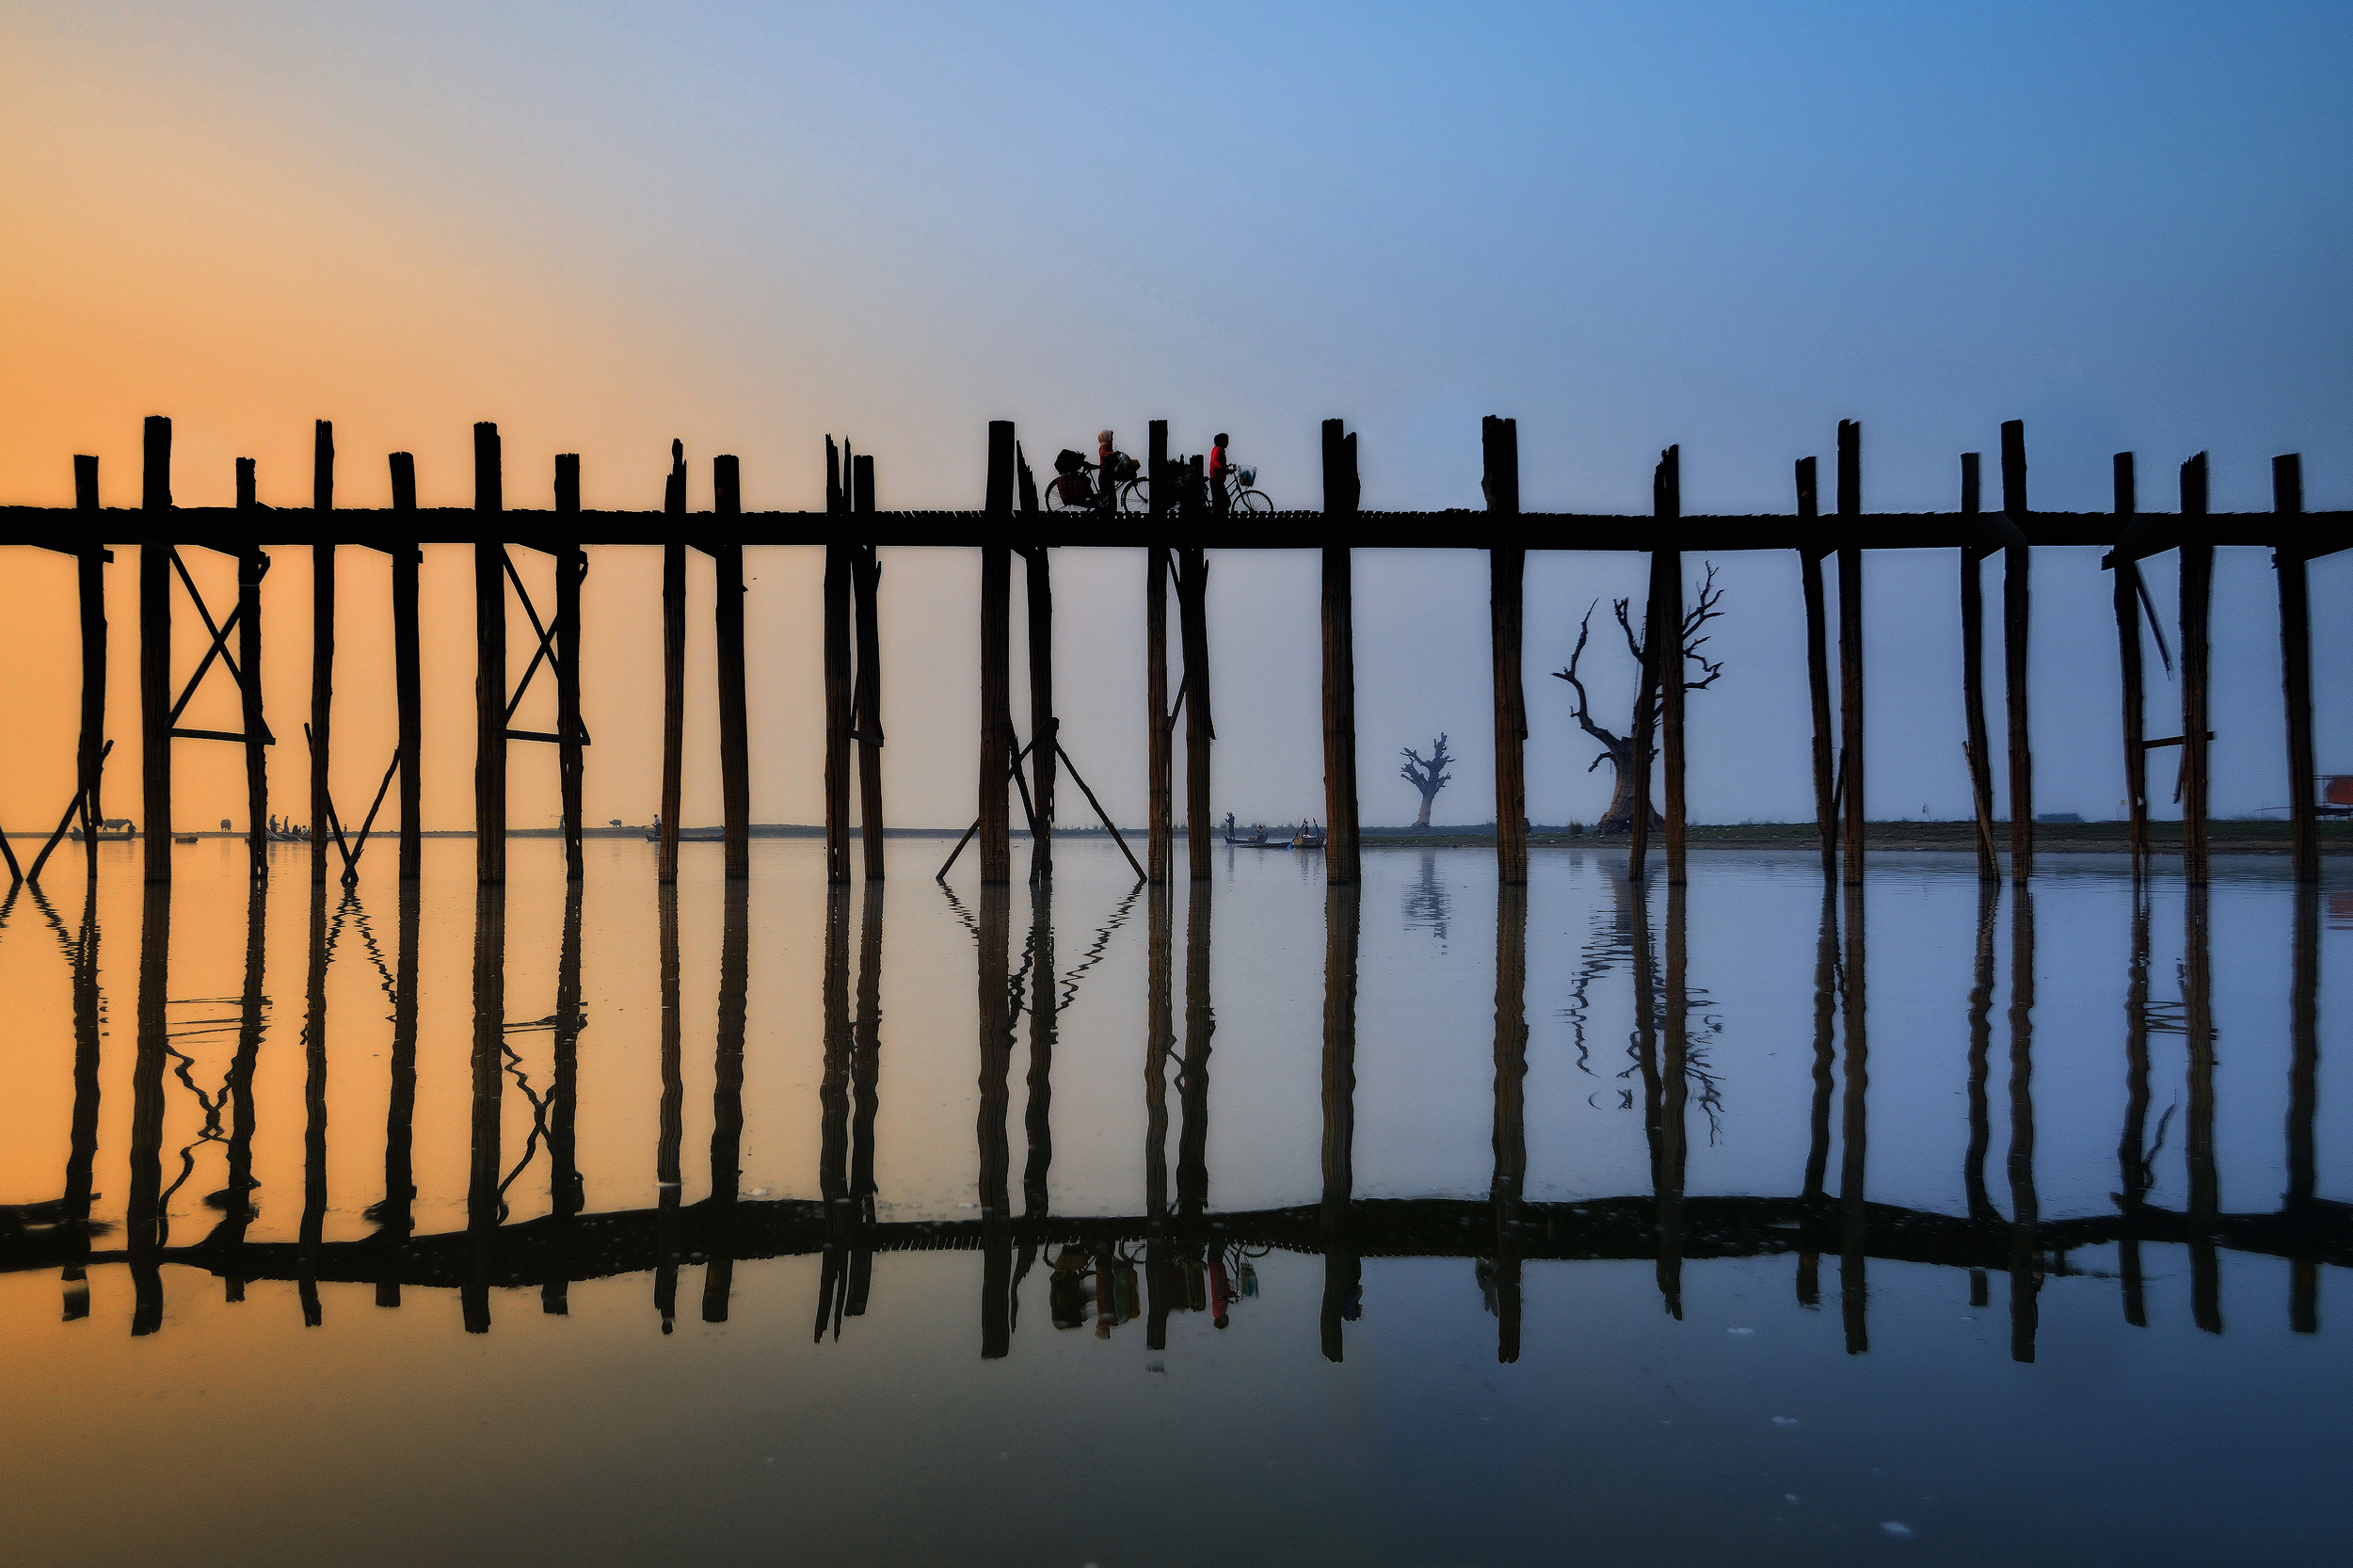 U Bein Reflection   U Bein bridge in Amarapura, southern Mandalay, as the sun burns through the mist at dawn. I set off in a boat when it was still dark and misty and photographed the bridge as it got busier and busier with early morning commuters.